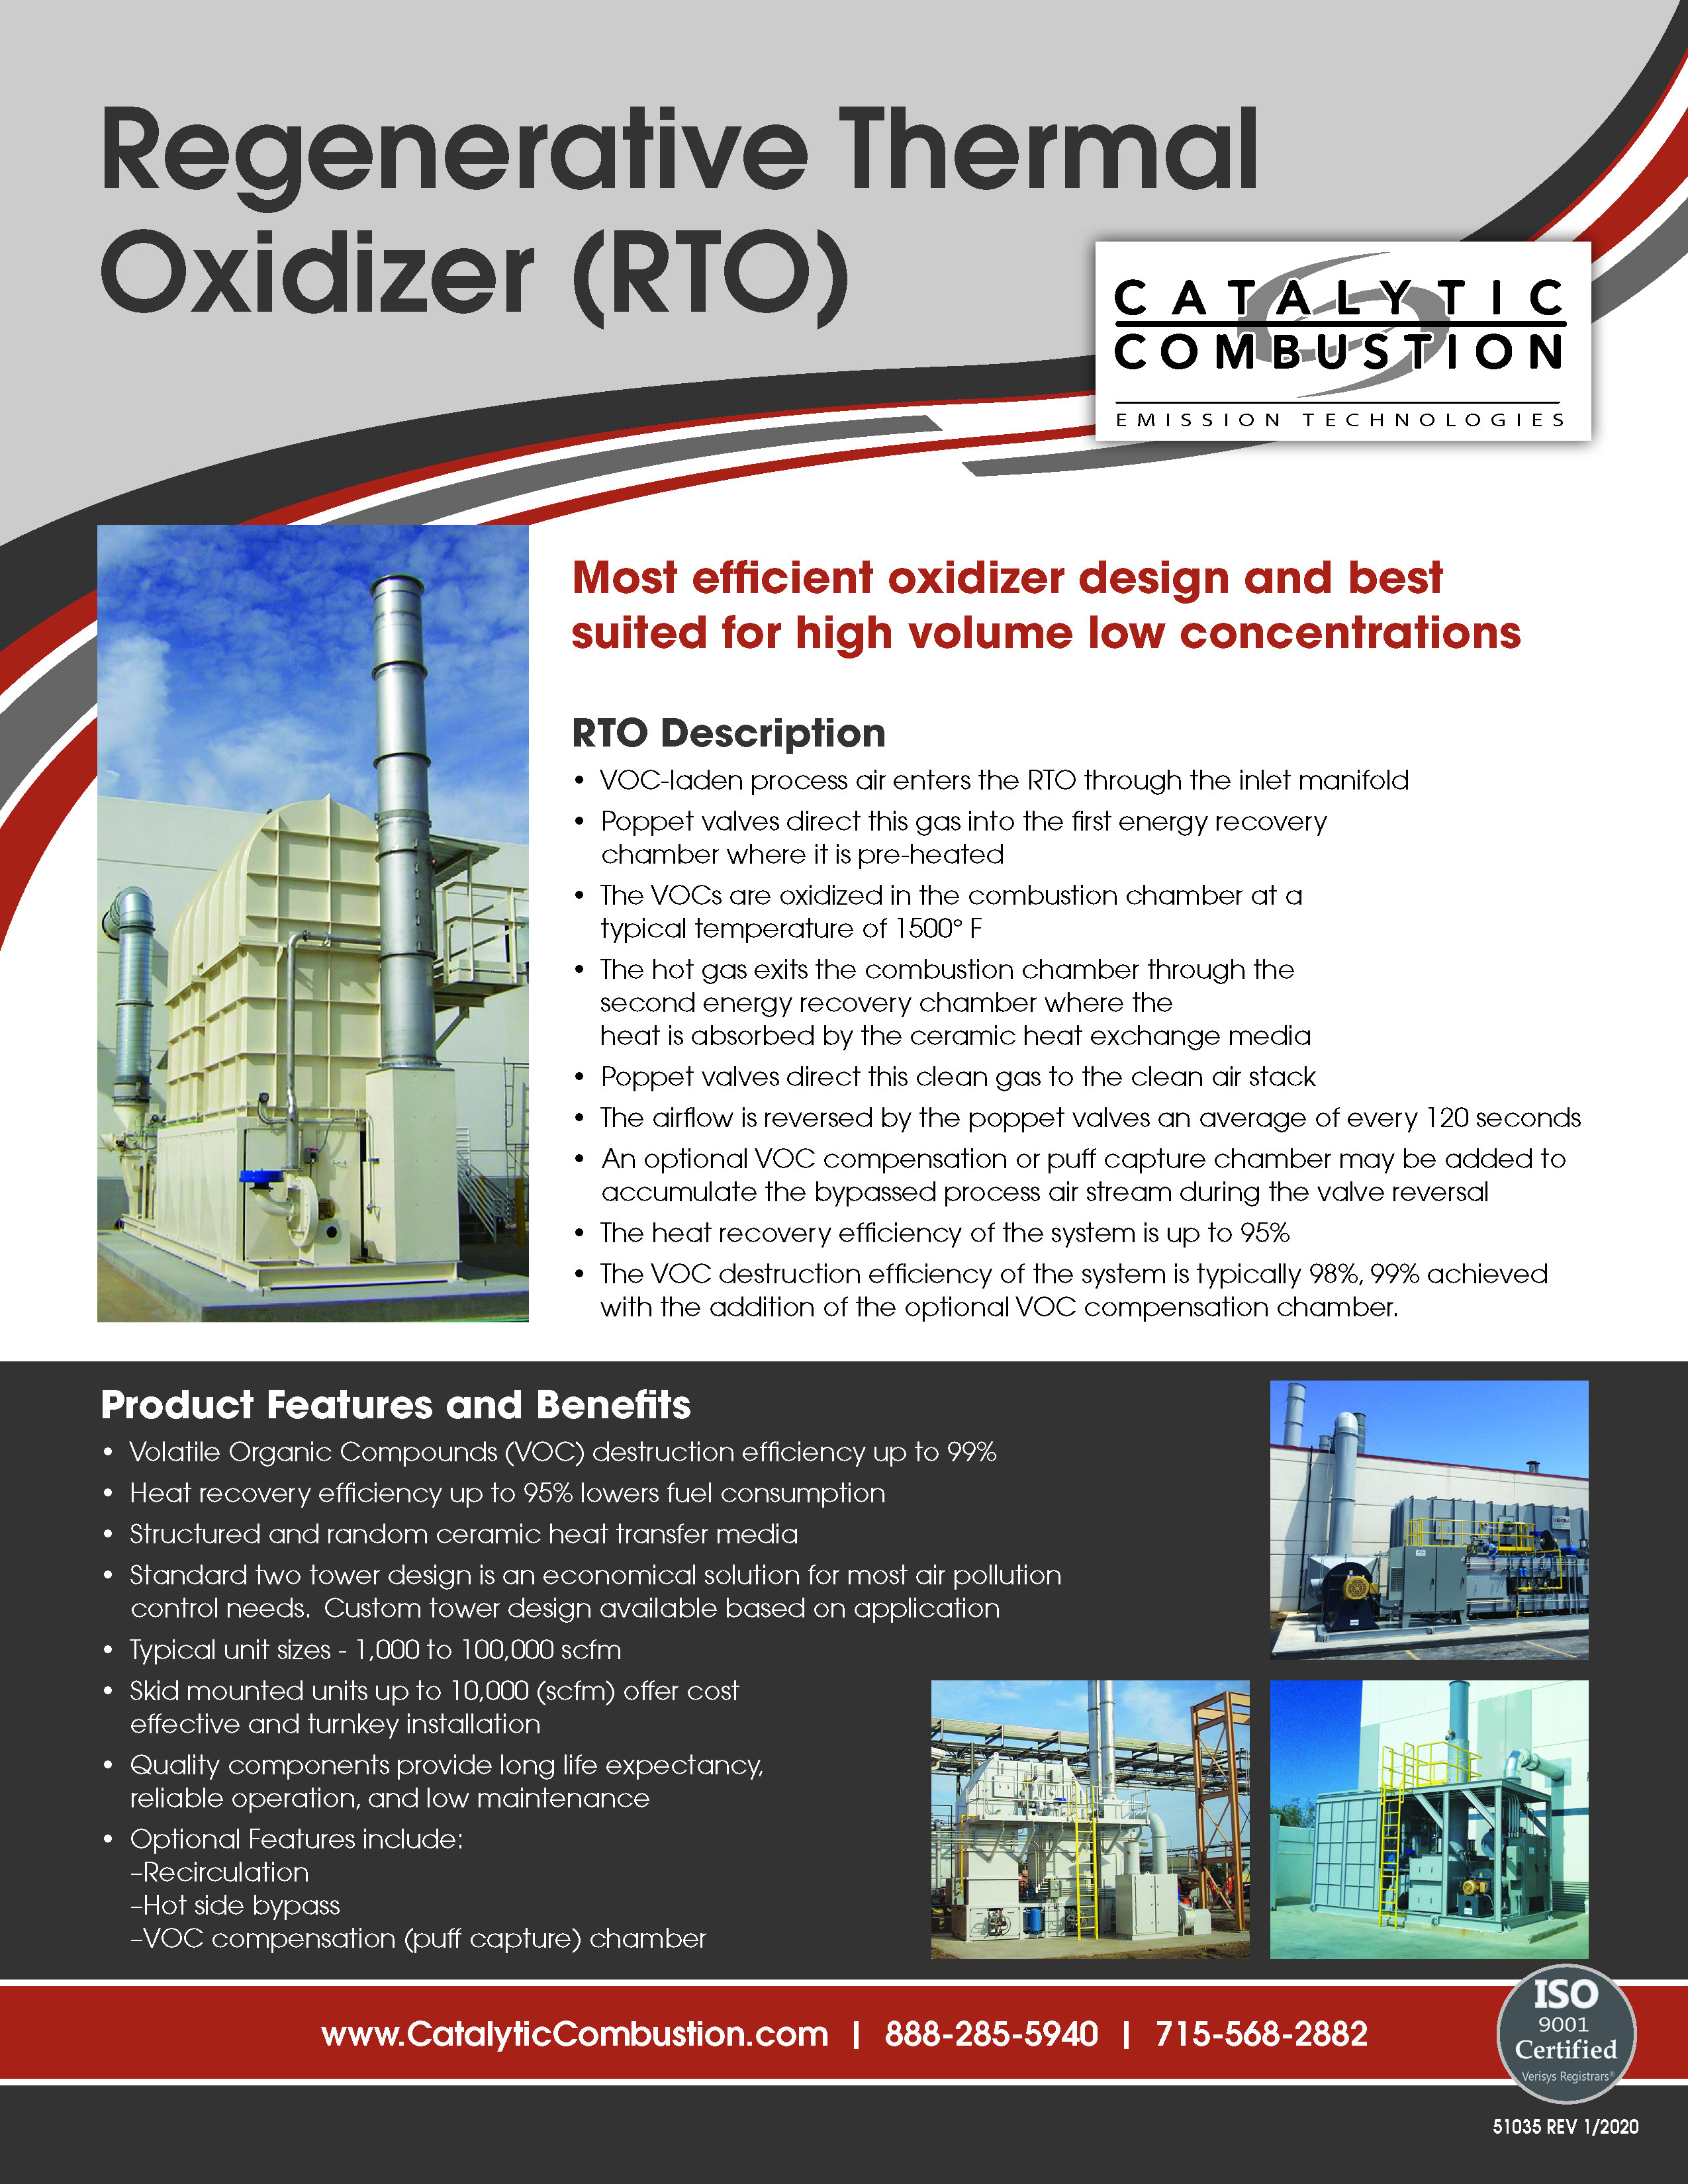 Catalytic Combustion - Regenerative Thermal Oxidizer